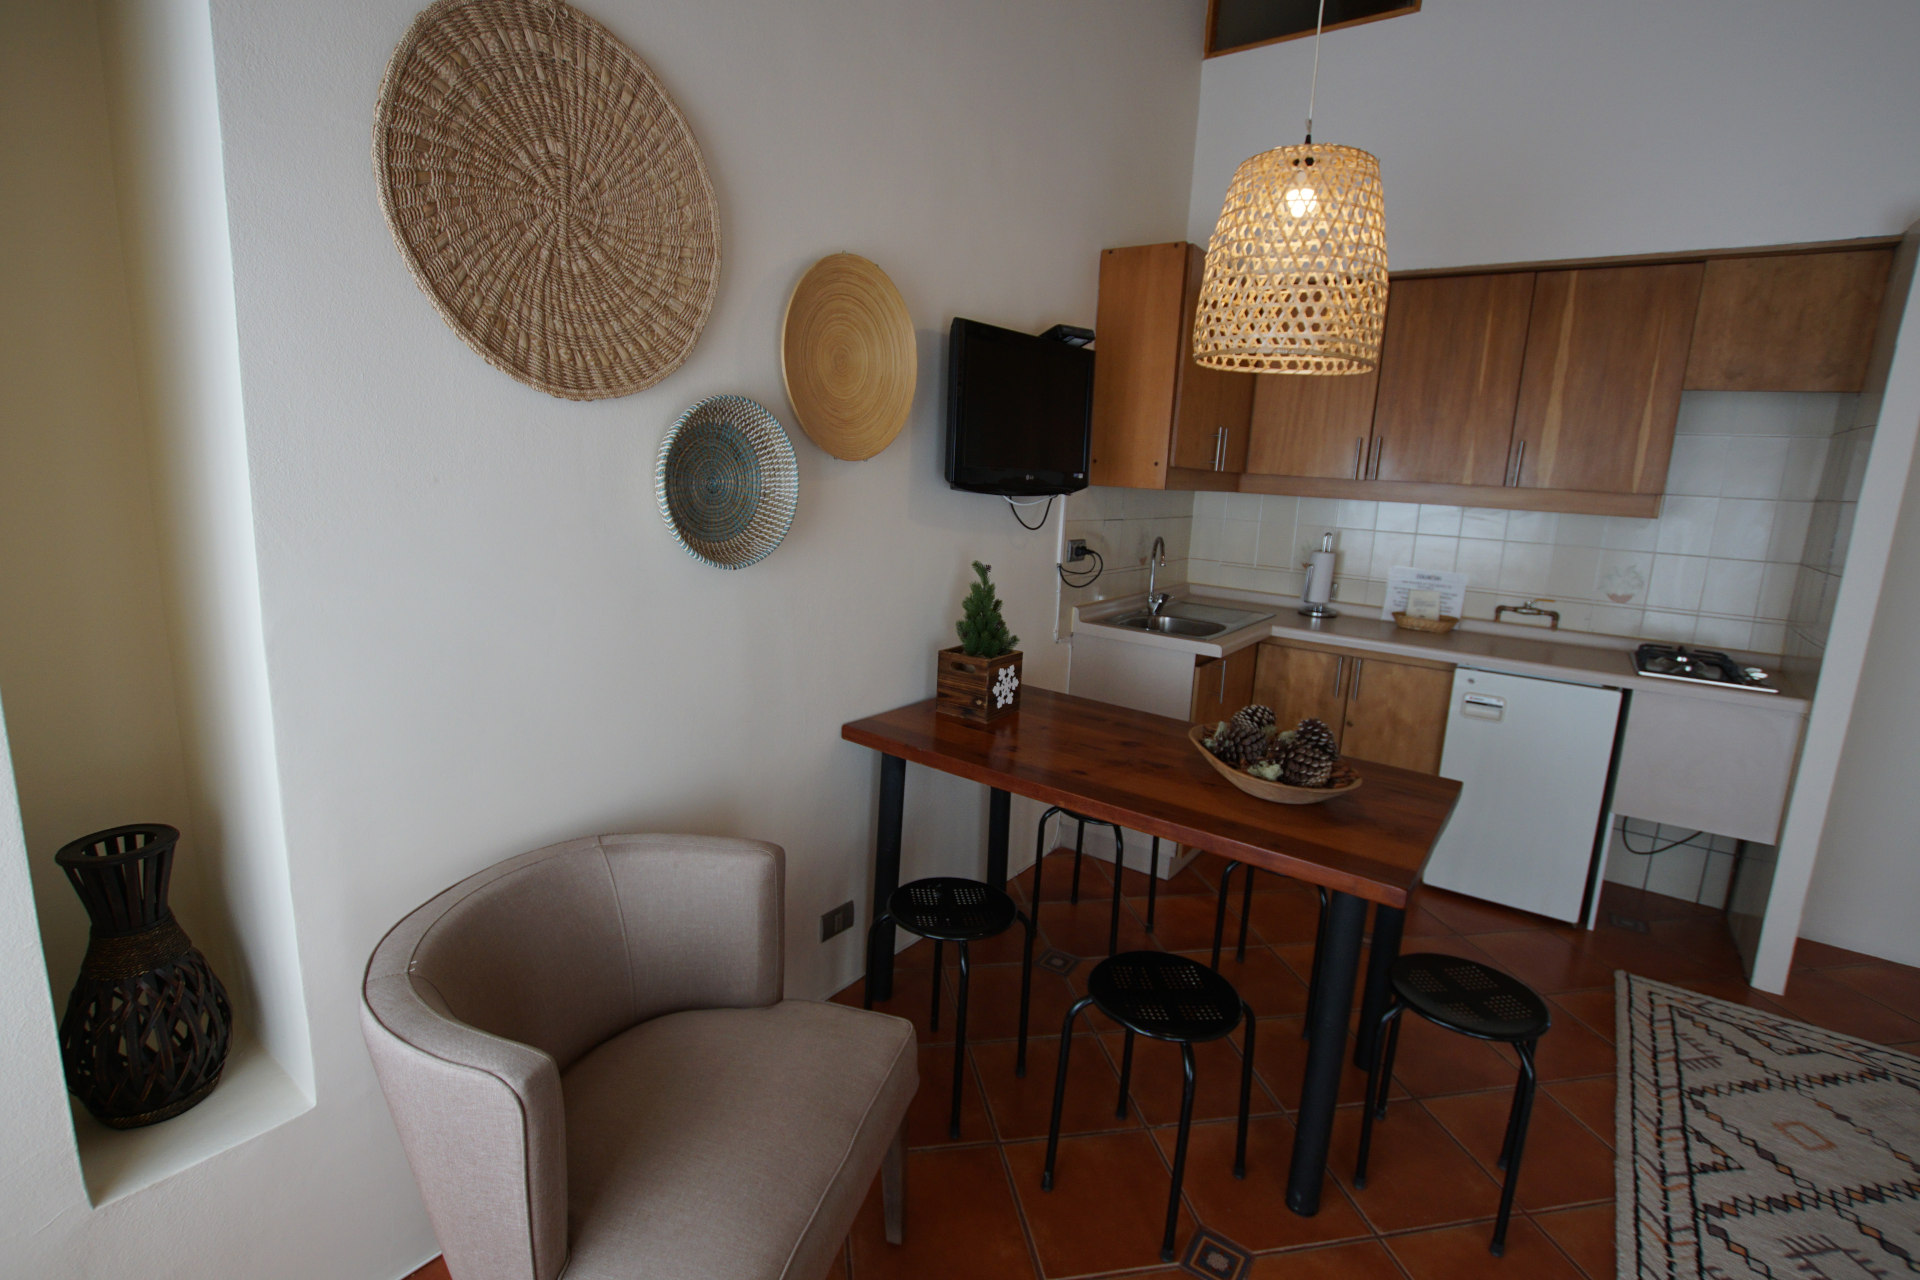 Kitchenette - Departamento Tipo B 222